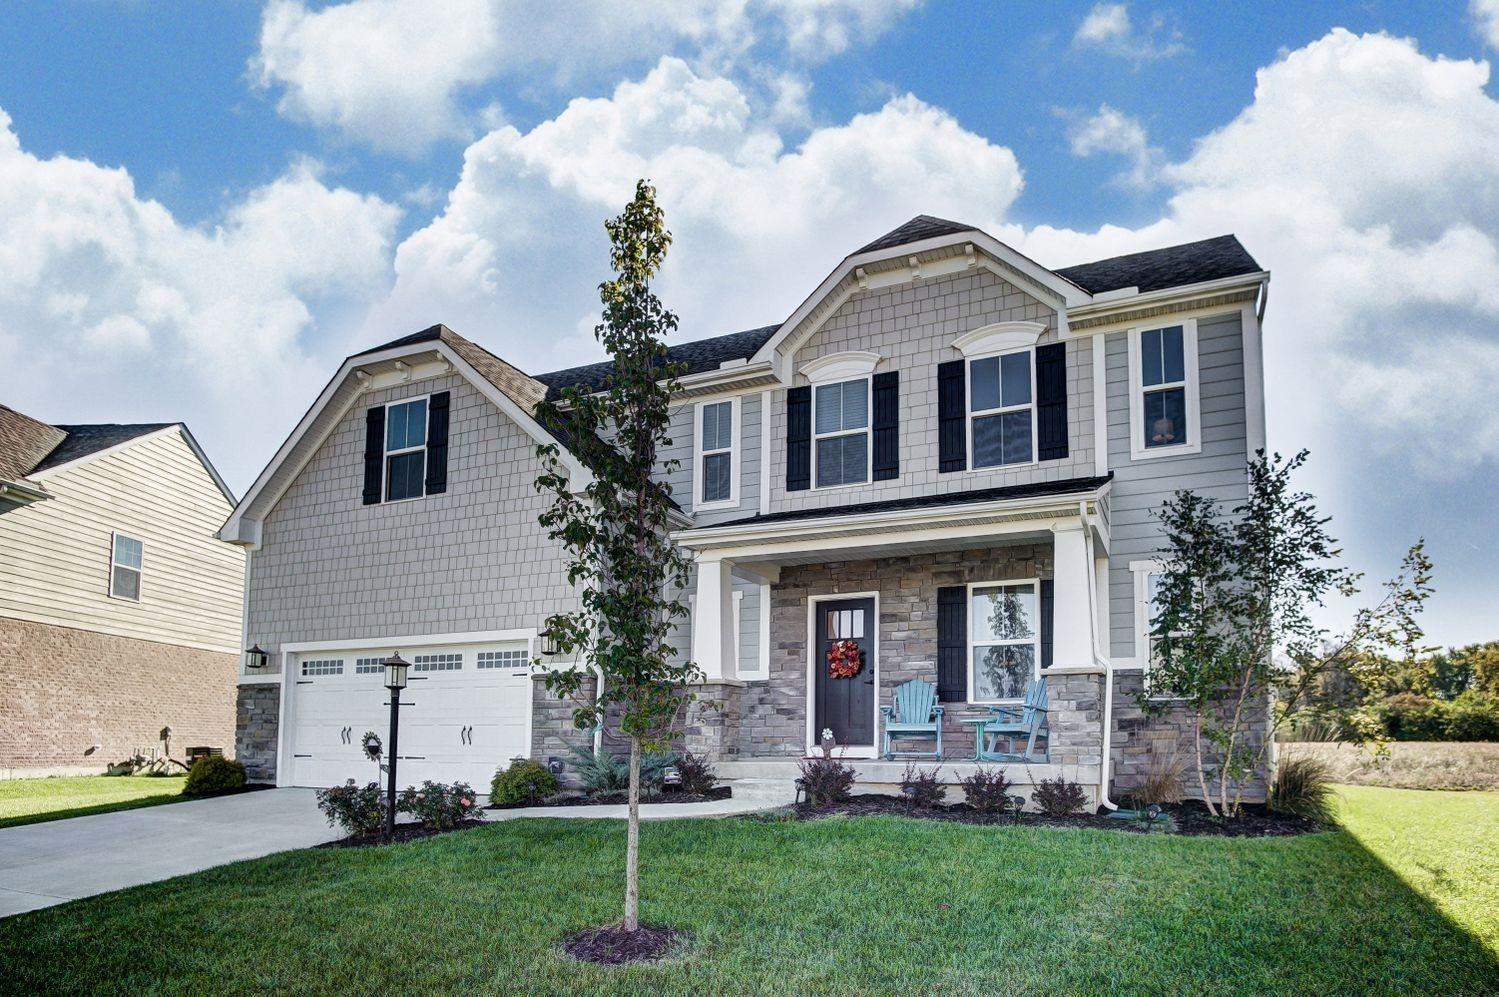 Property for sale at 1685 Elm Brook Trail, Clearcreek Twp.,  OH 45458